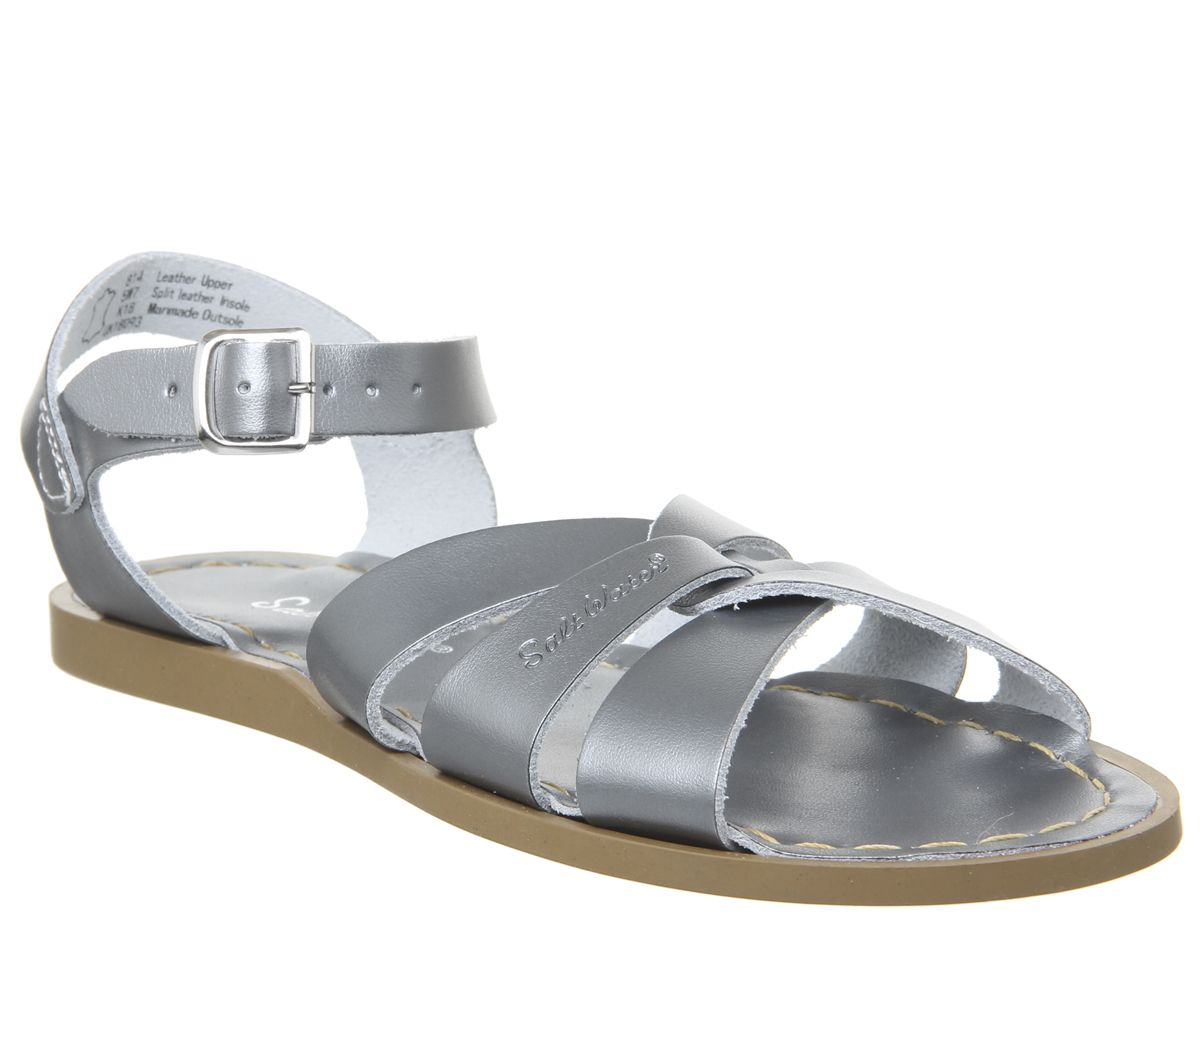 953e9f60237f3 Salt Water Salt Water Original Sandals Pewter - Sandals